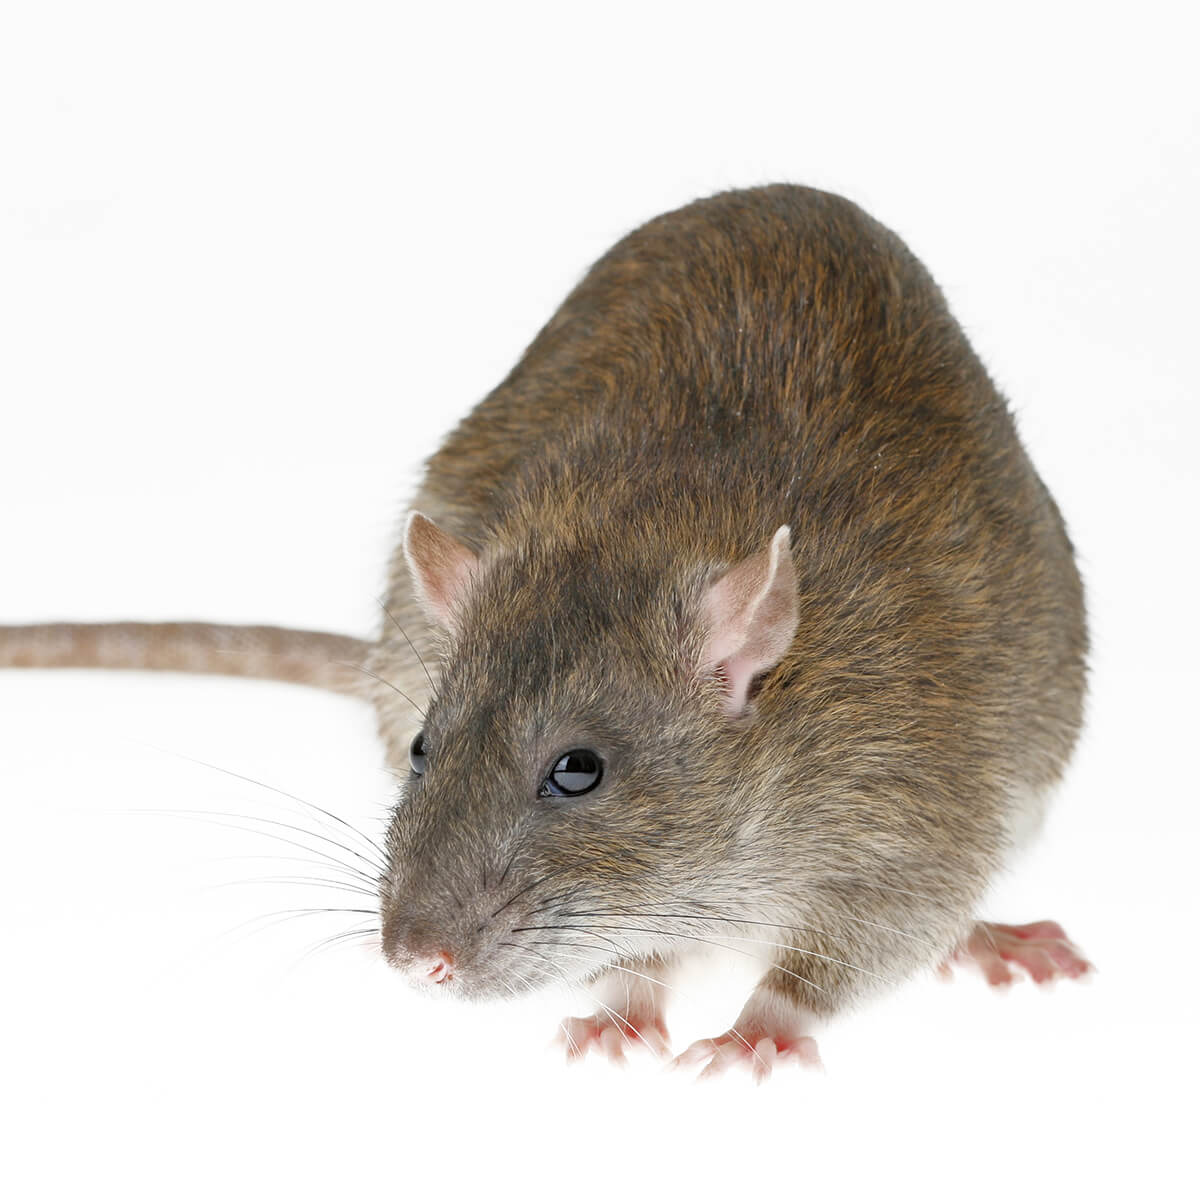 Rats - Featured Image